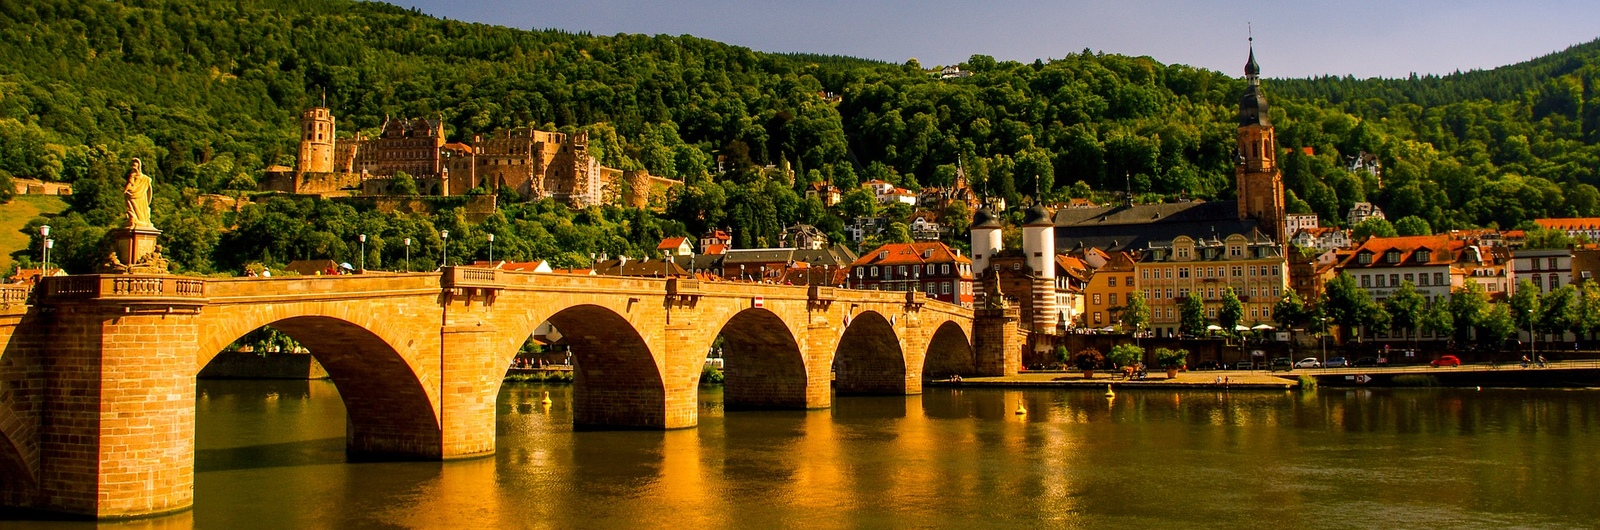 heidelberg city header